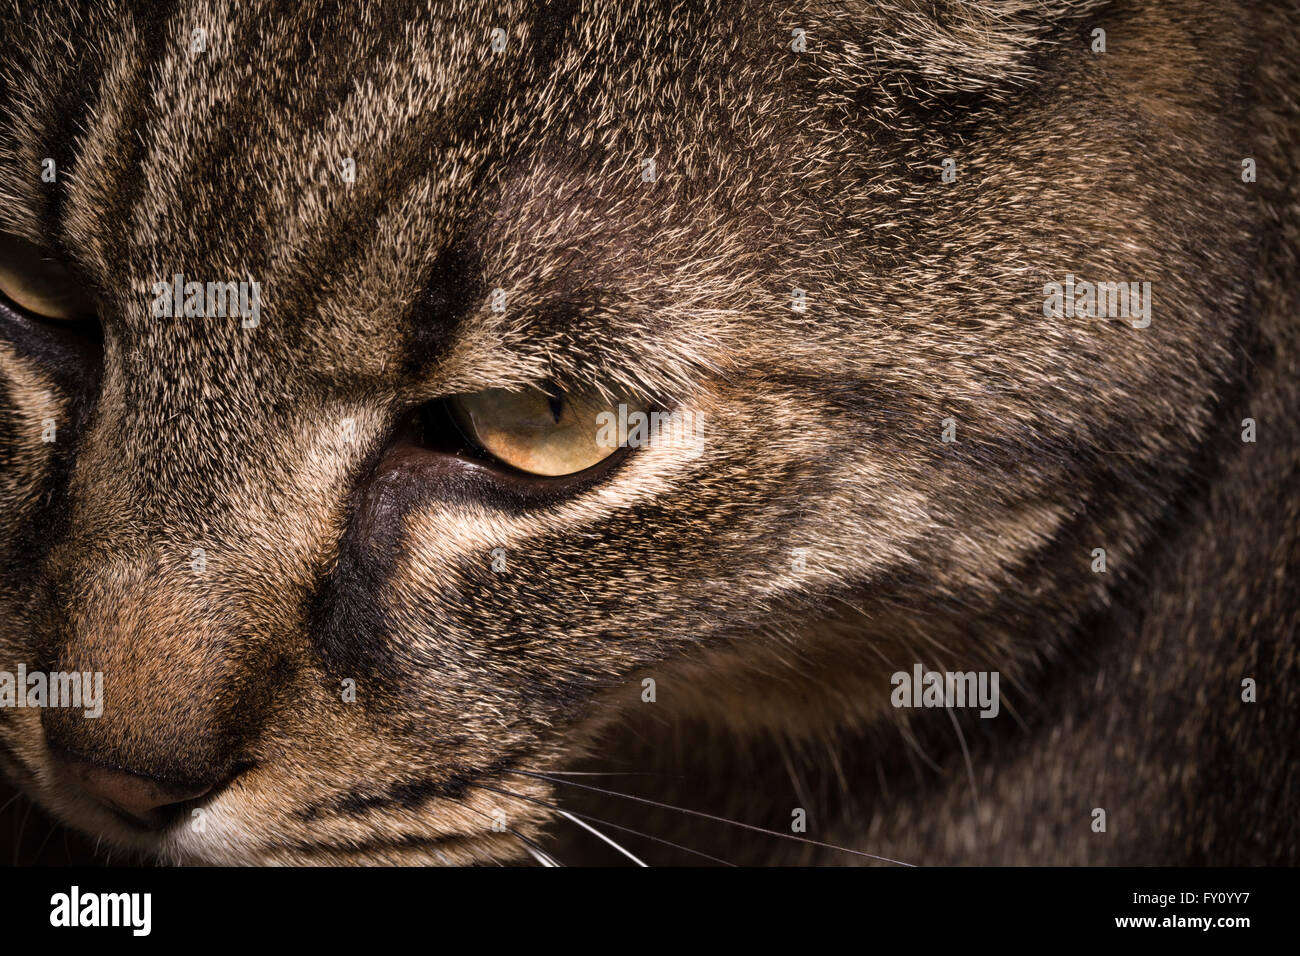 Moment Cat observing - Stock Image